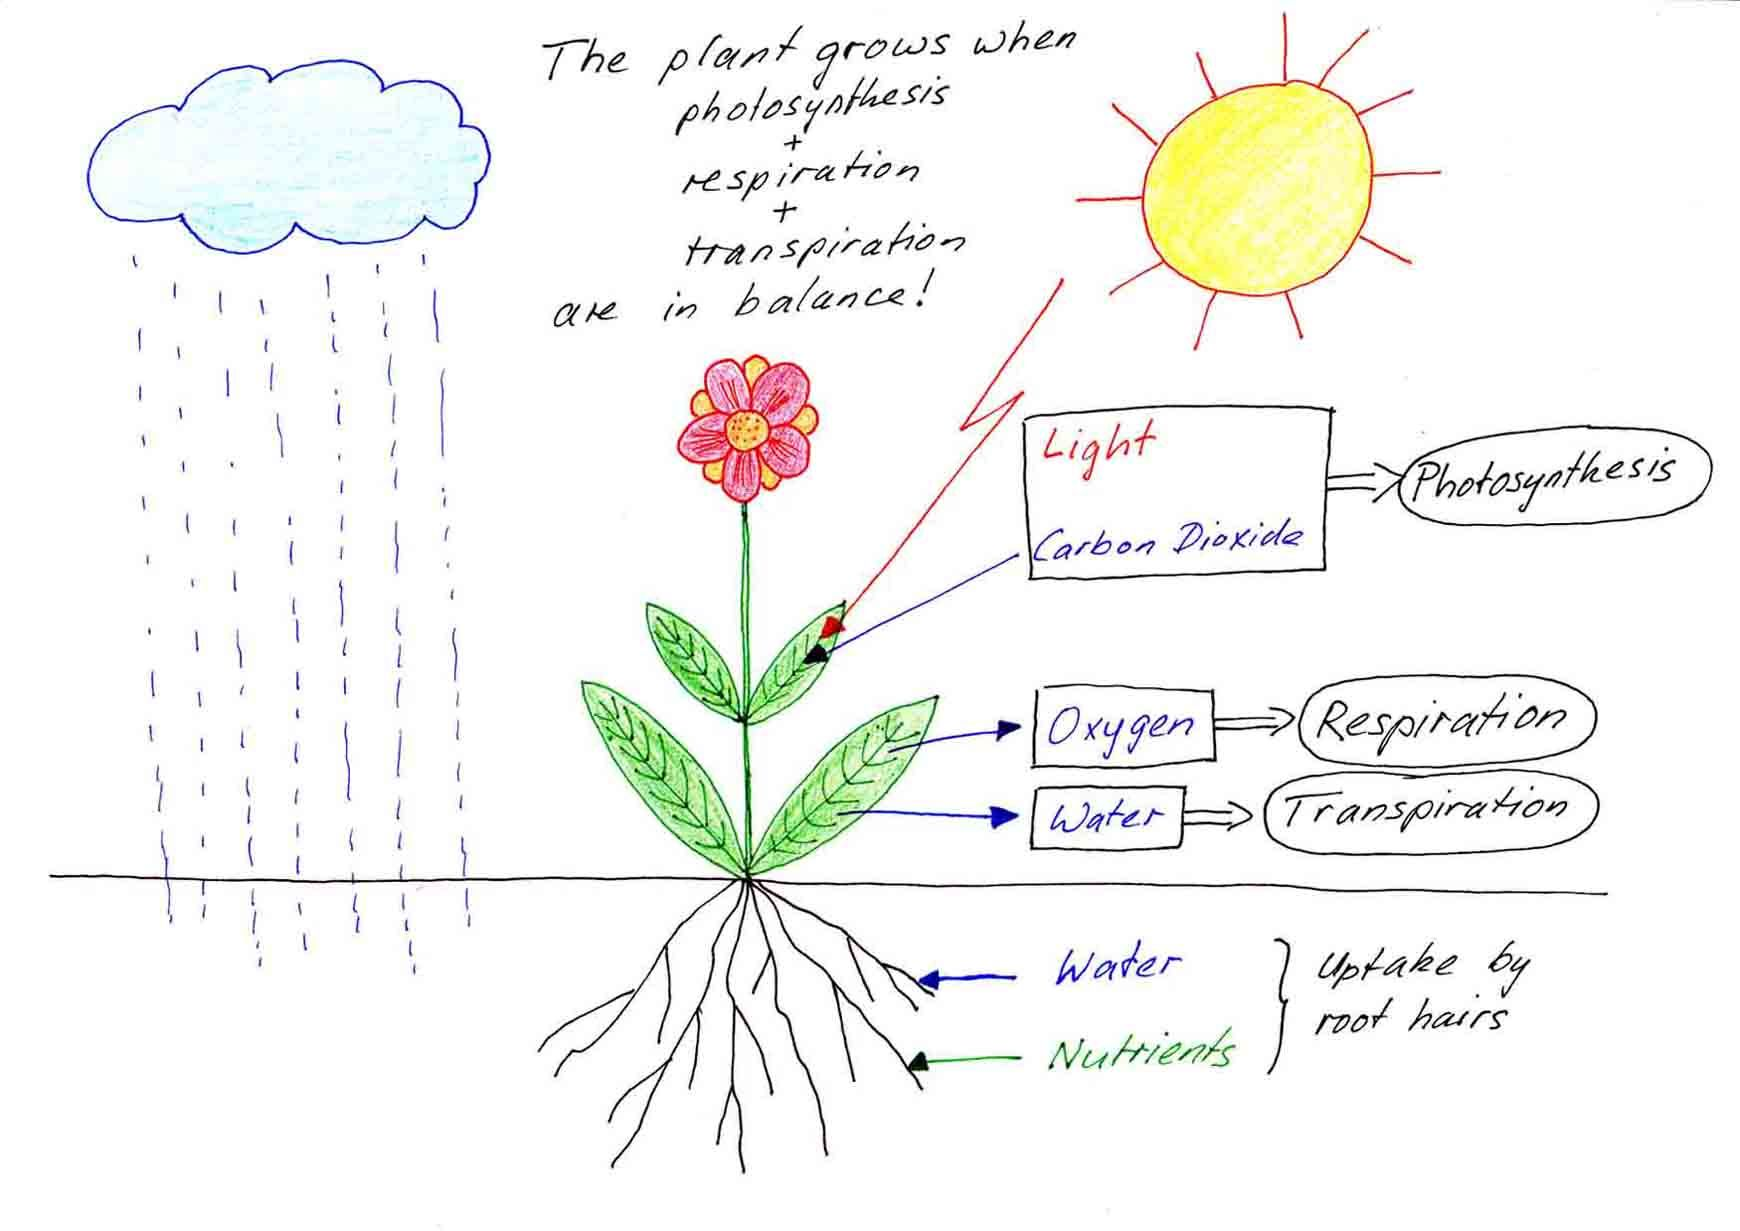 Heres a nice diagram outlining the processes of photosynthesis heres a nice diagram outlining the processes of photosynthesis respiration and transpiration in plants pooptronica Image collections